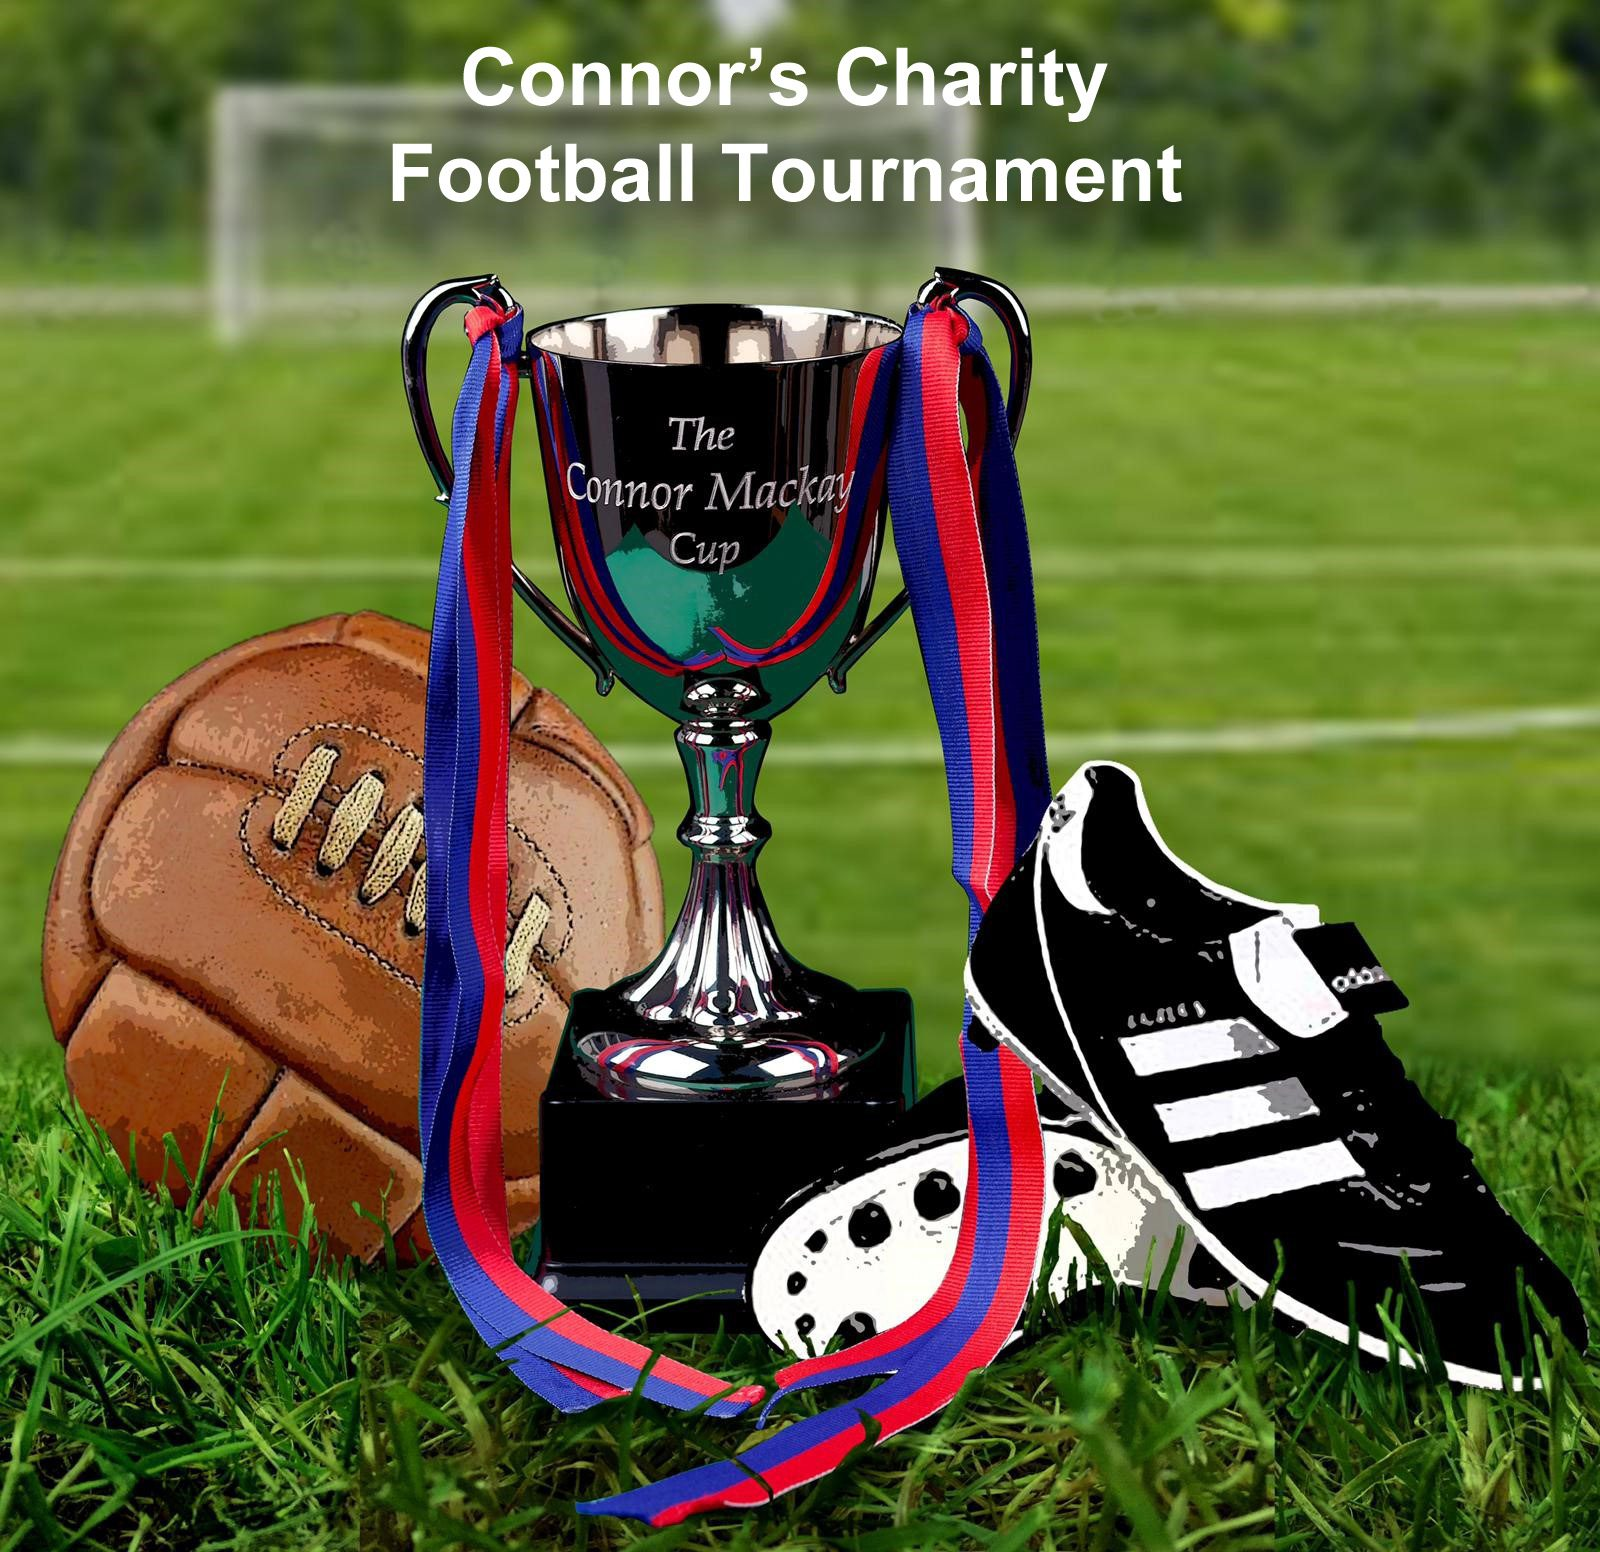 Raising money with a charoty football tournamet for mental health